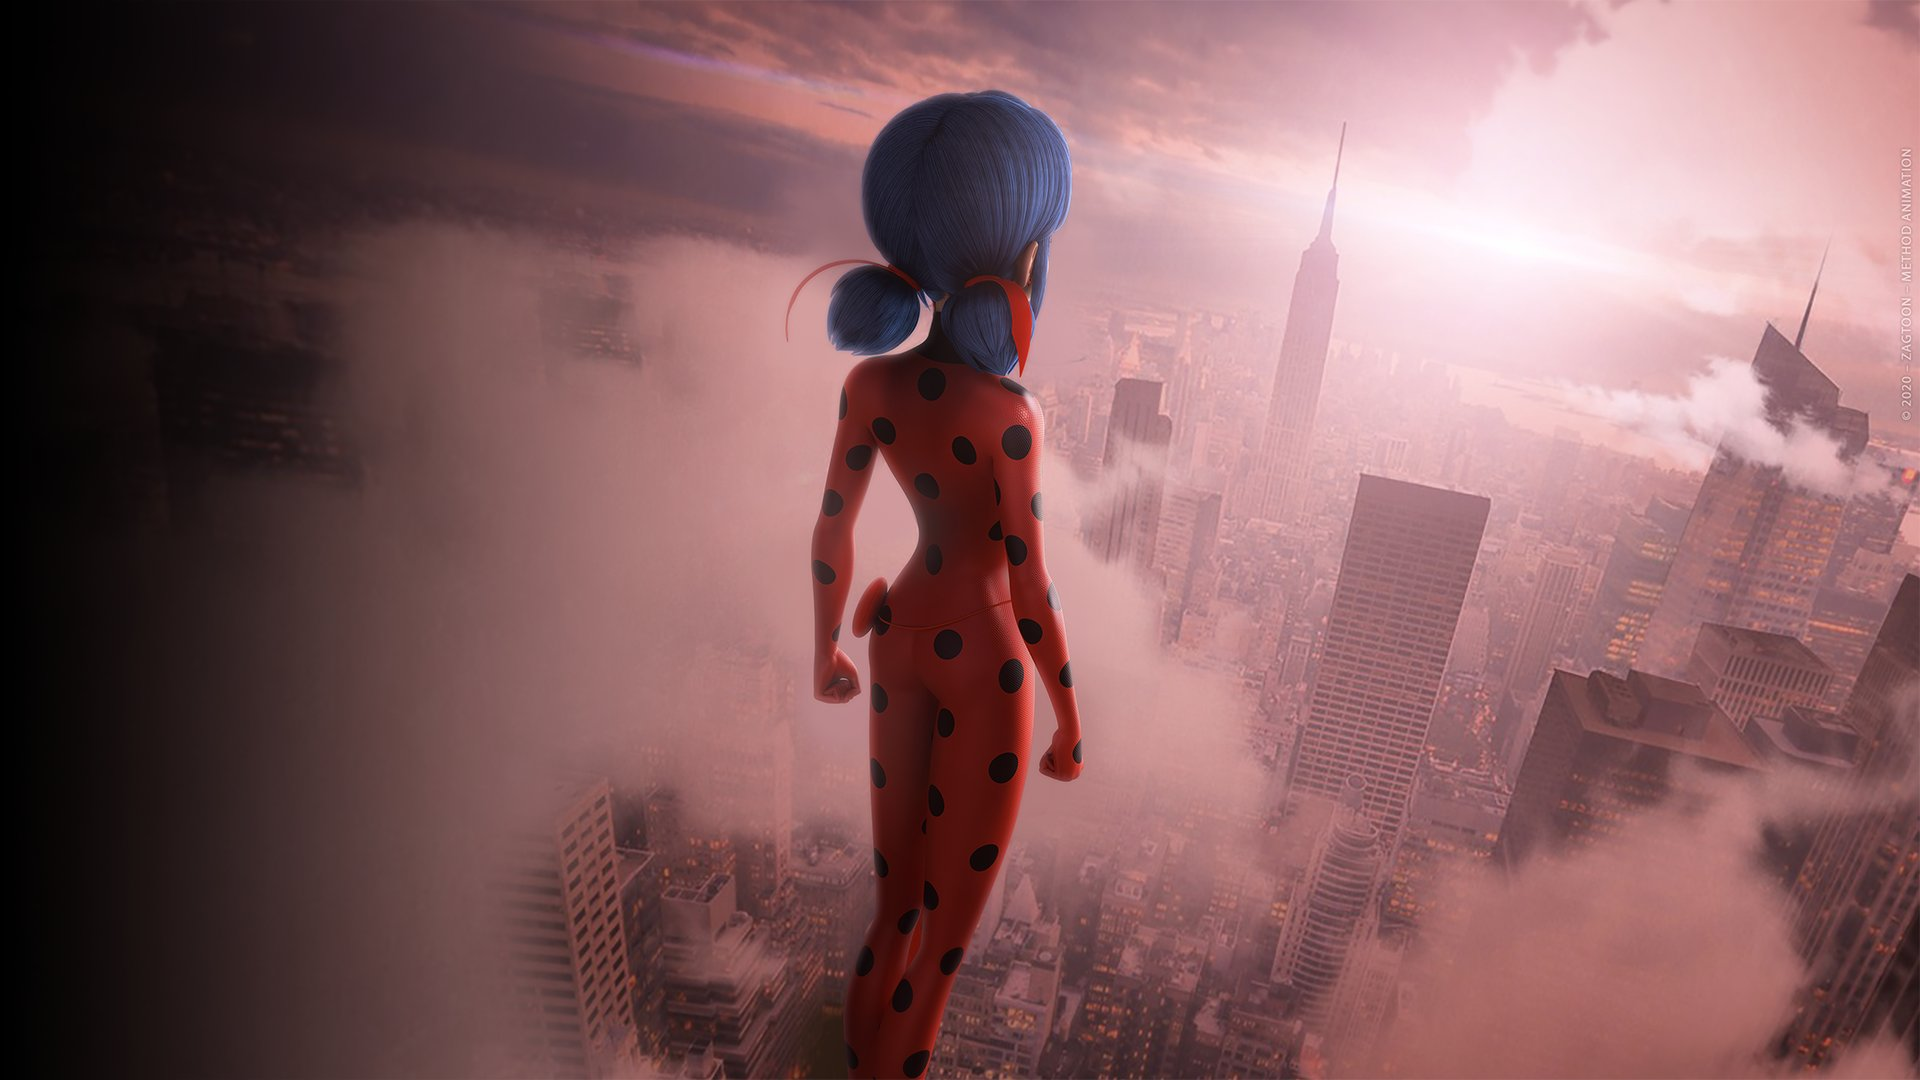 fond Les stories de Miraculous - #Coursd'escrime @Marinette